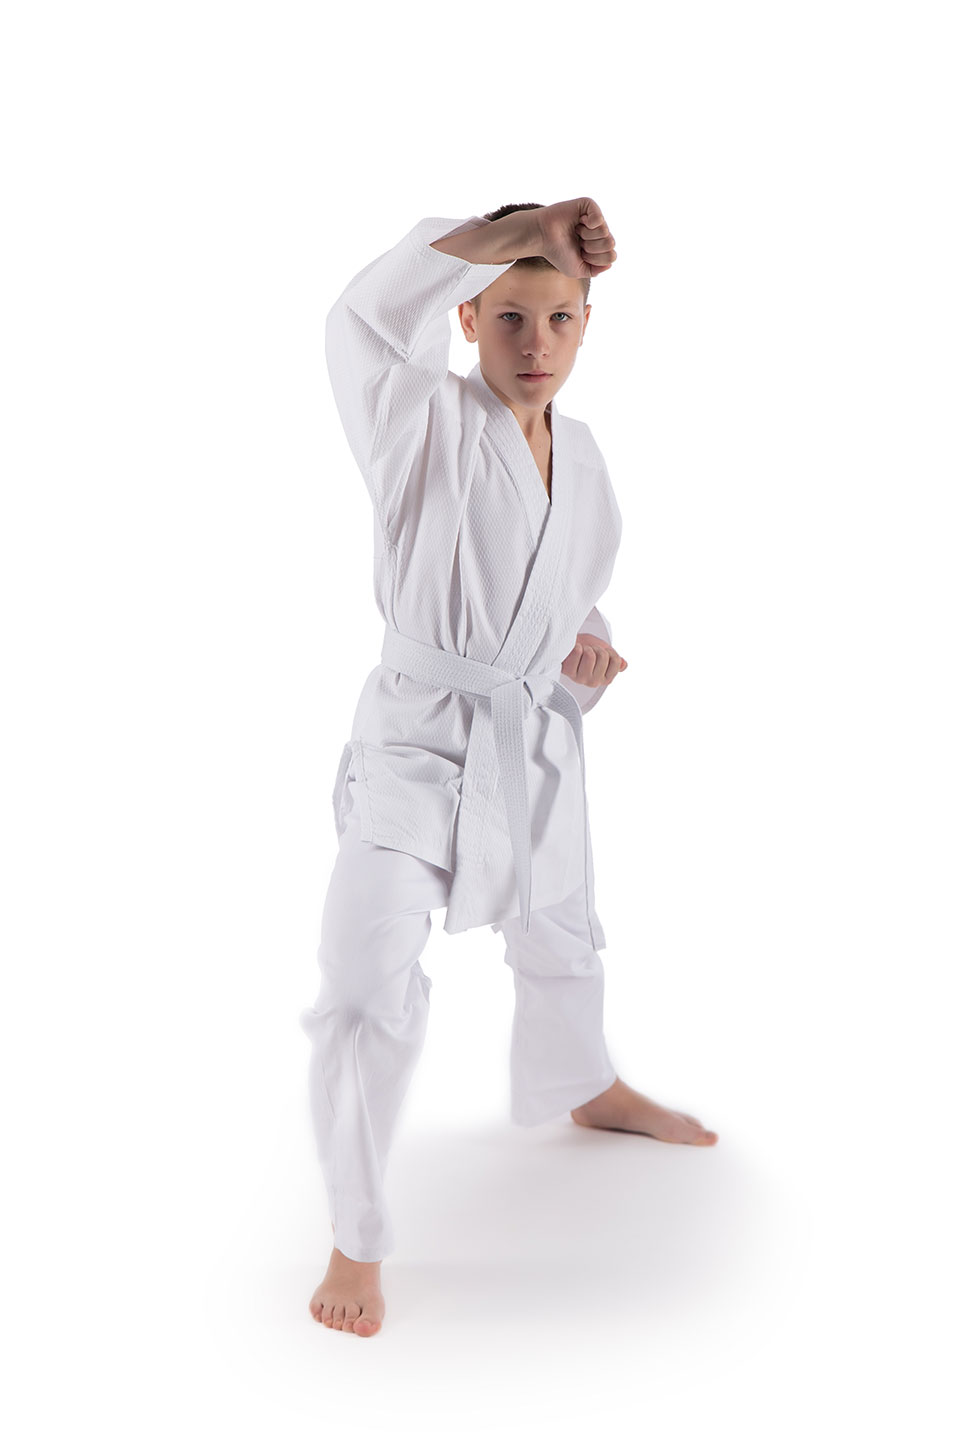 Tae kwon do for teens in Calgary